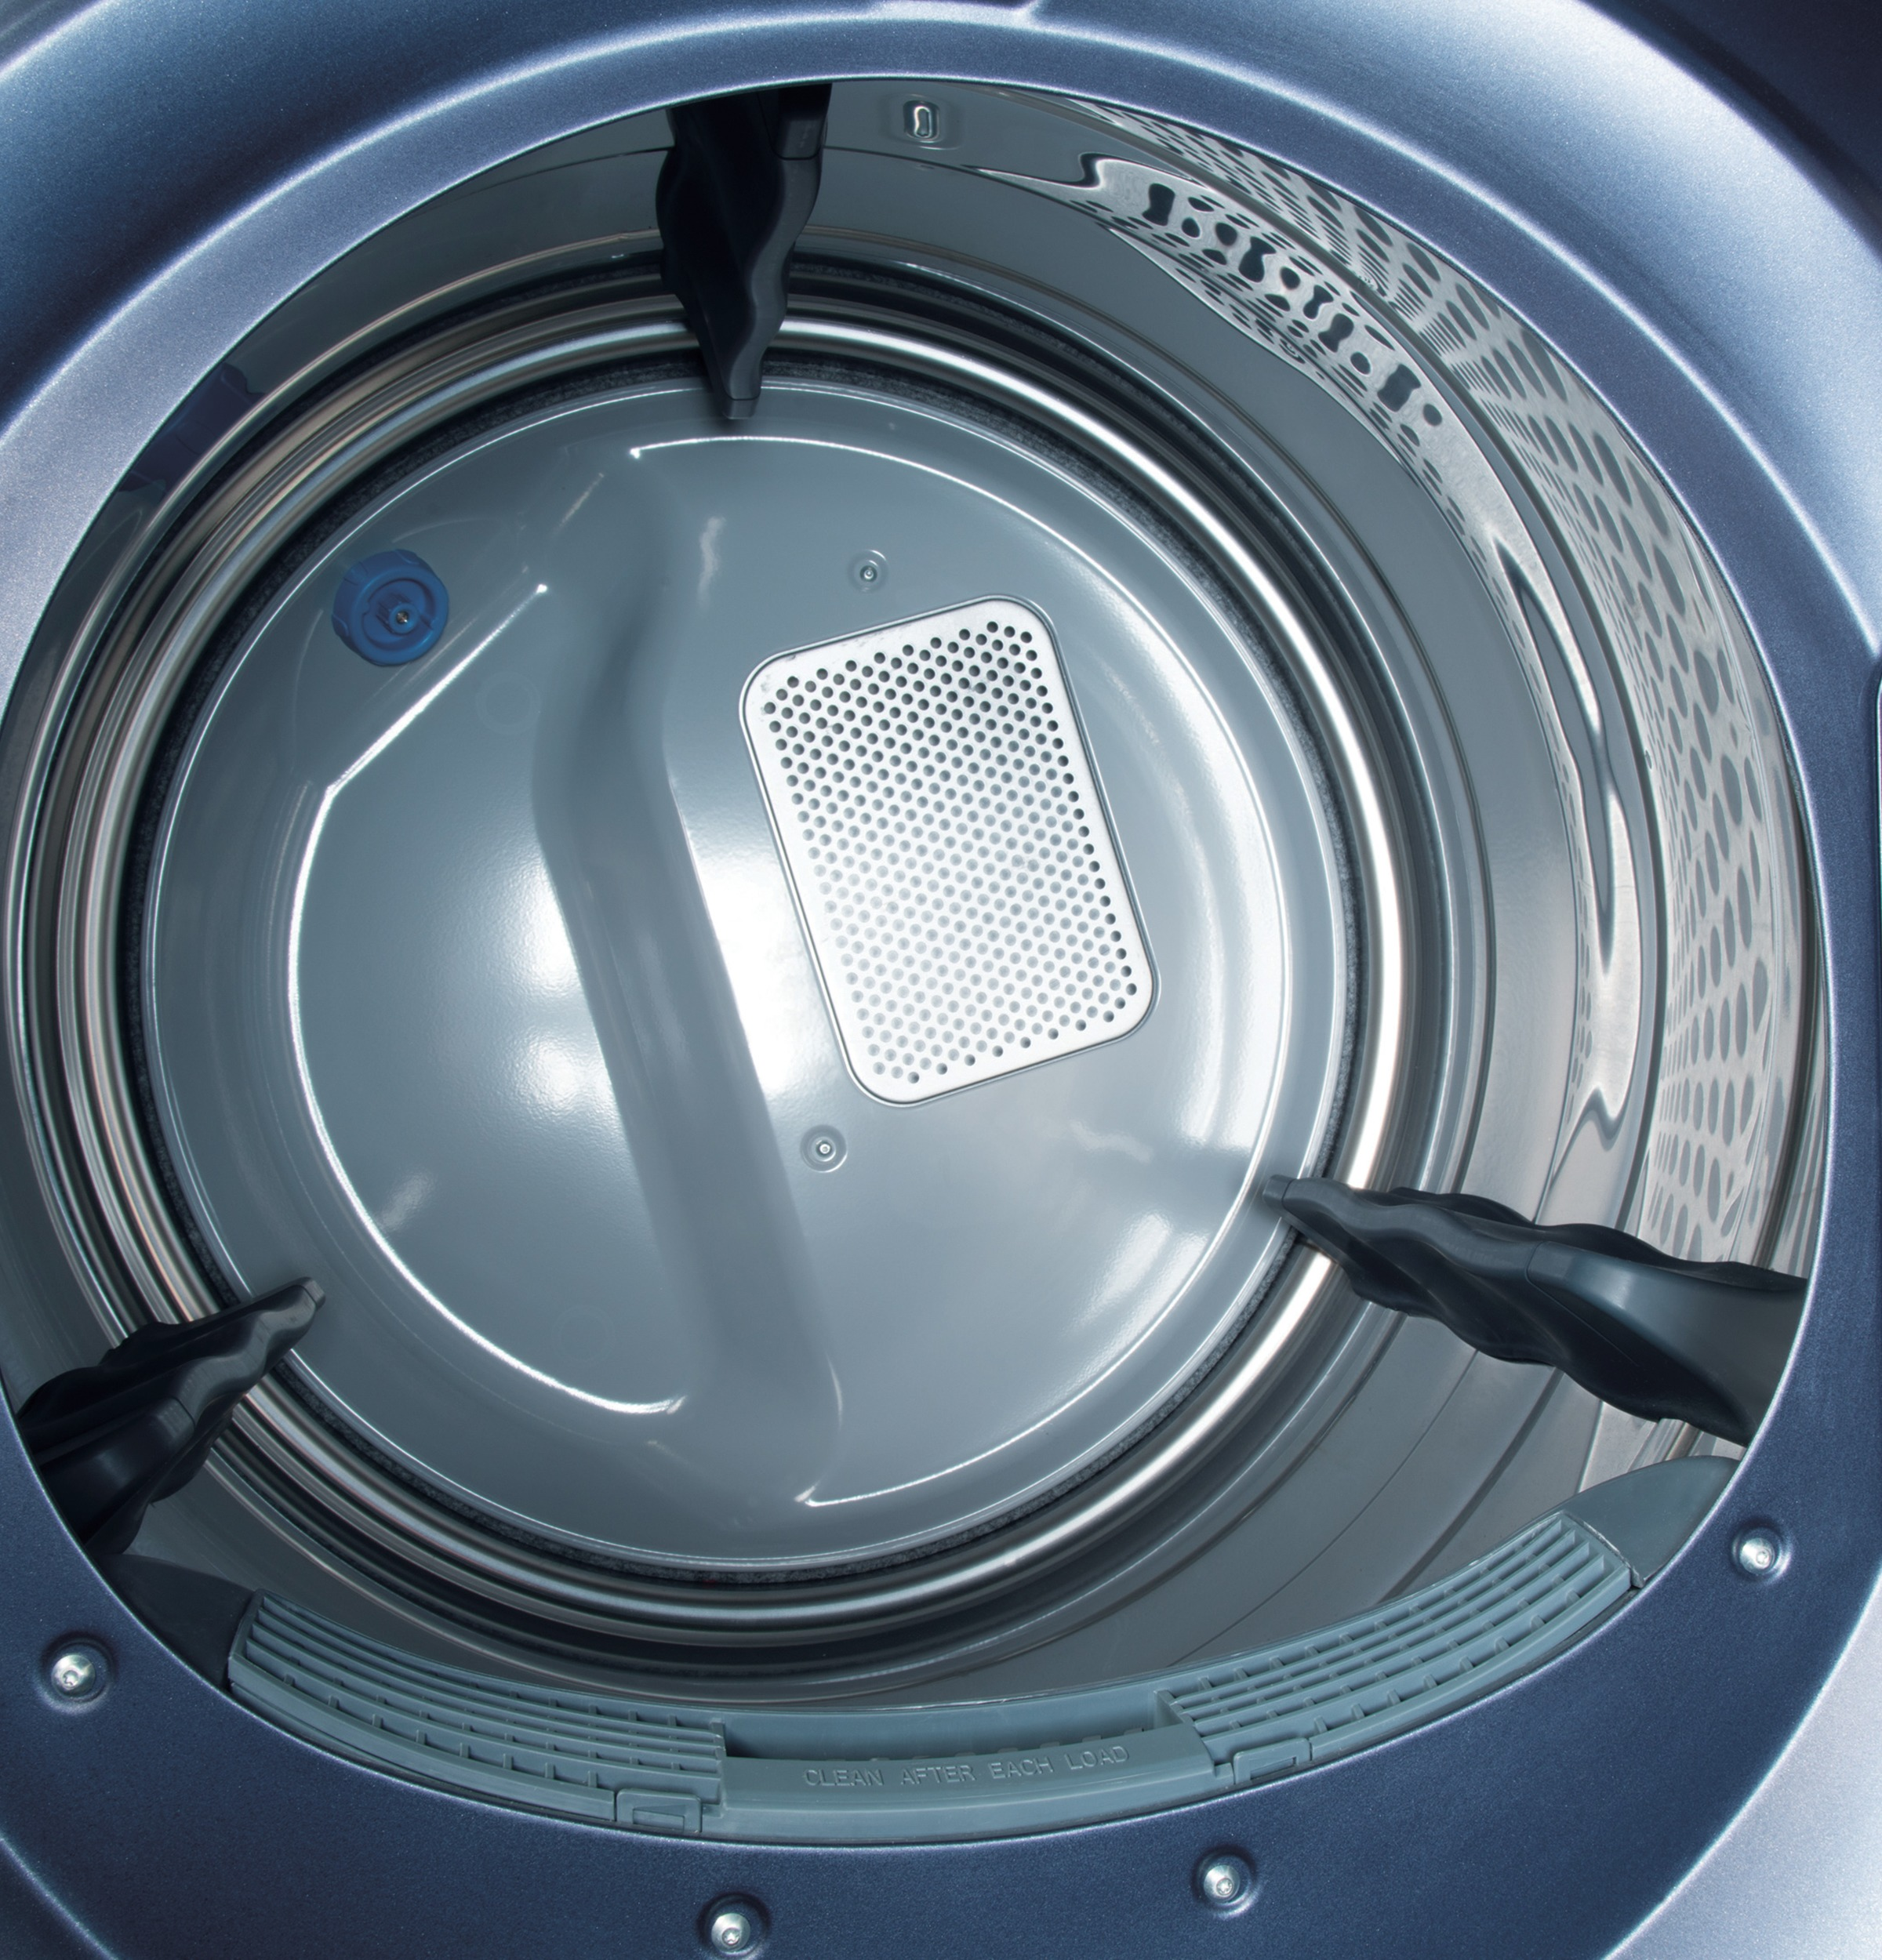 Model: GFD85GSPNDG | GE GE® 7.8 cu. ft. Capacity Smart Front Load Gas Dryer with Steam and Sanitize Cycle